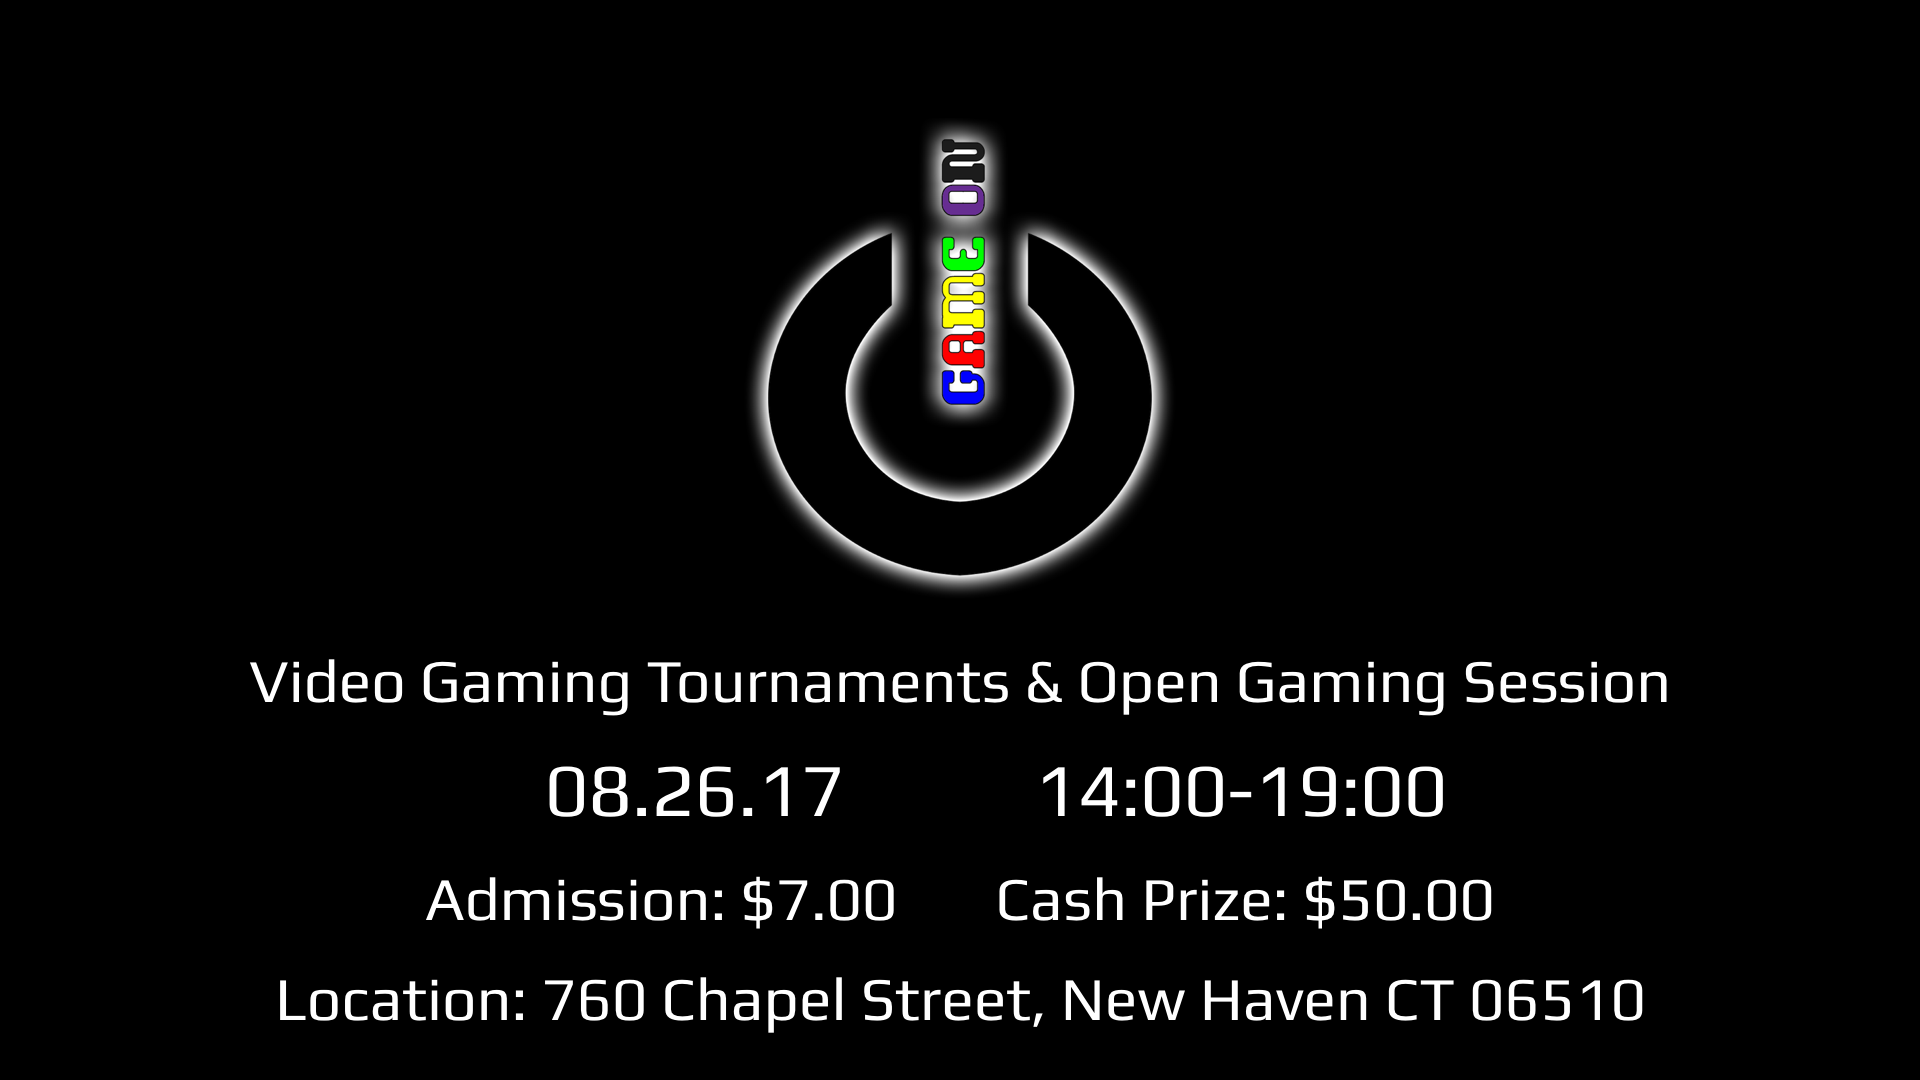 Video Game Tournaments & Open Gaming Session! Admission is